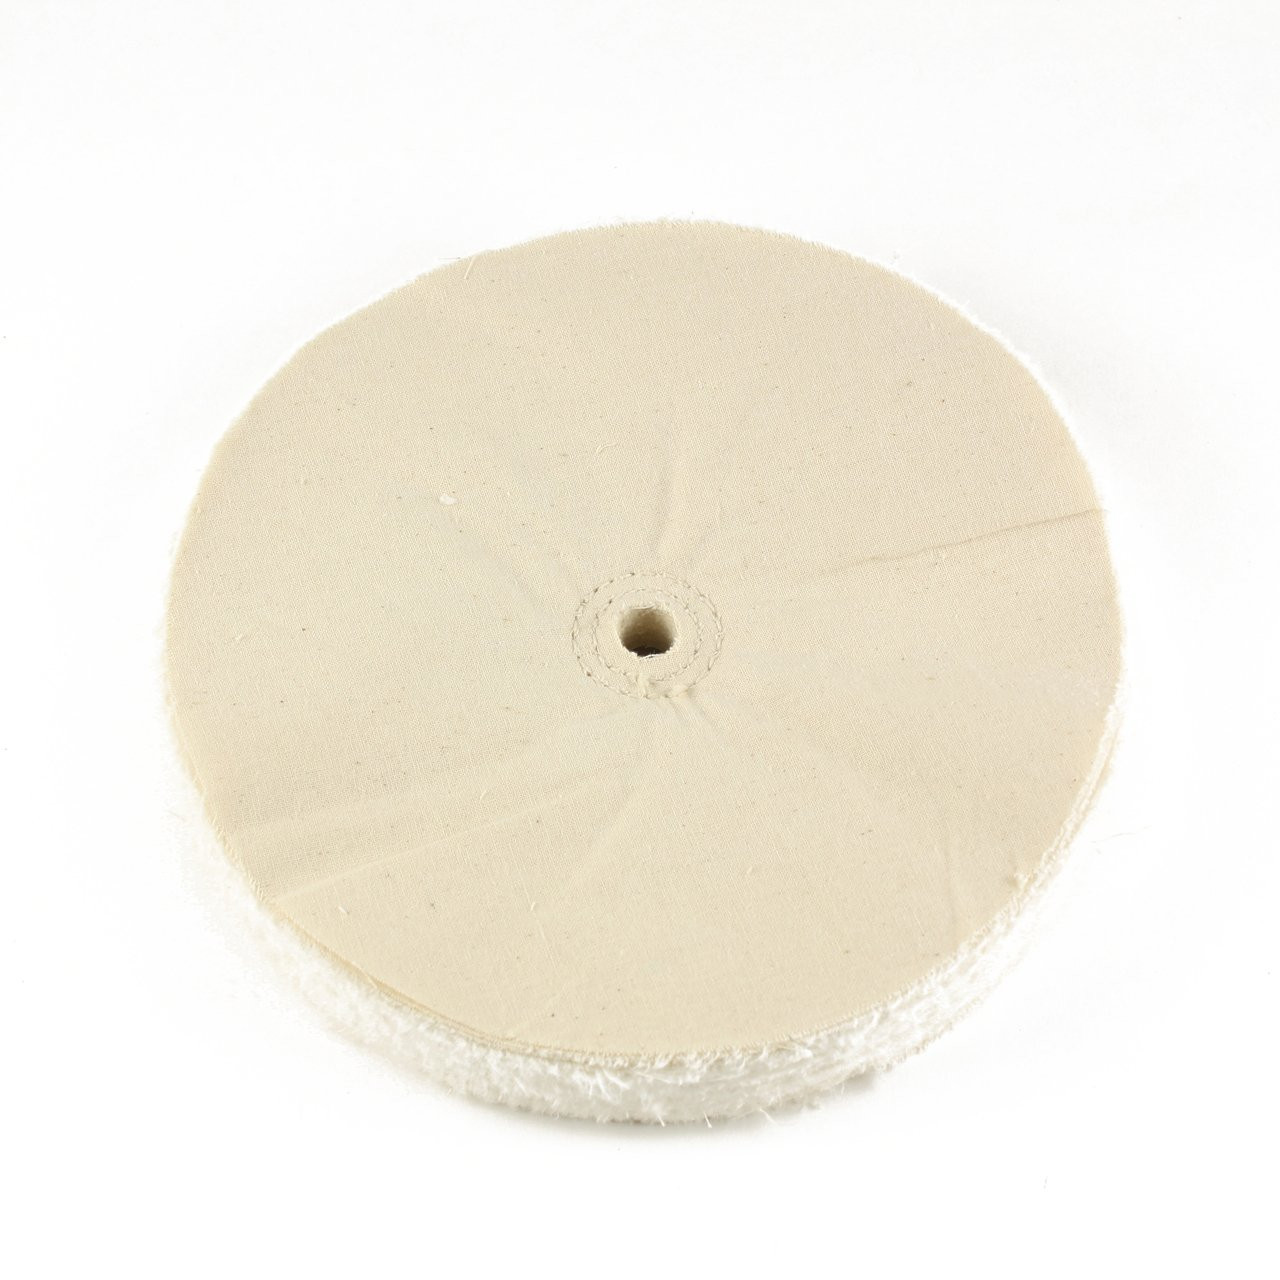 "60 Ply Spiral Sewn Polishing Muslin Cotton Buffing Wheel 4/"" x 1//2/"" Arbor Hole"